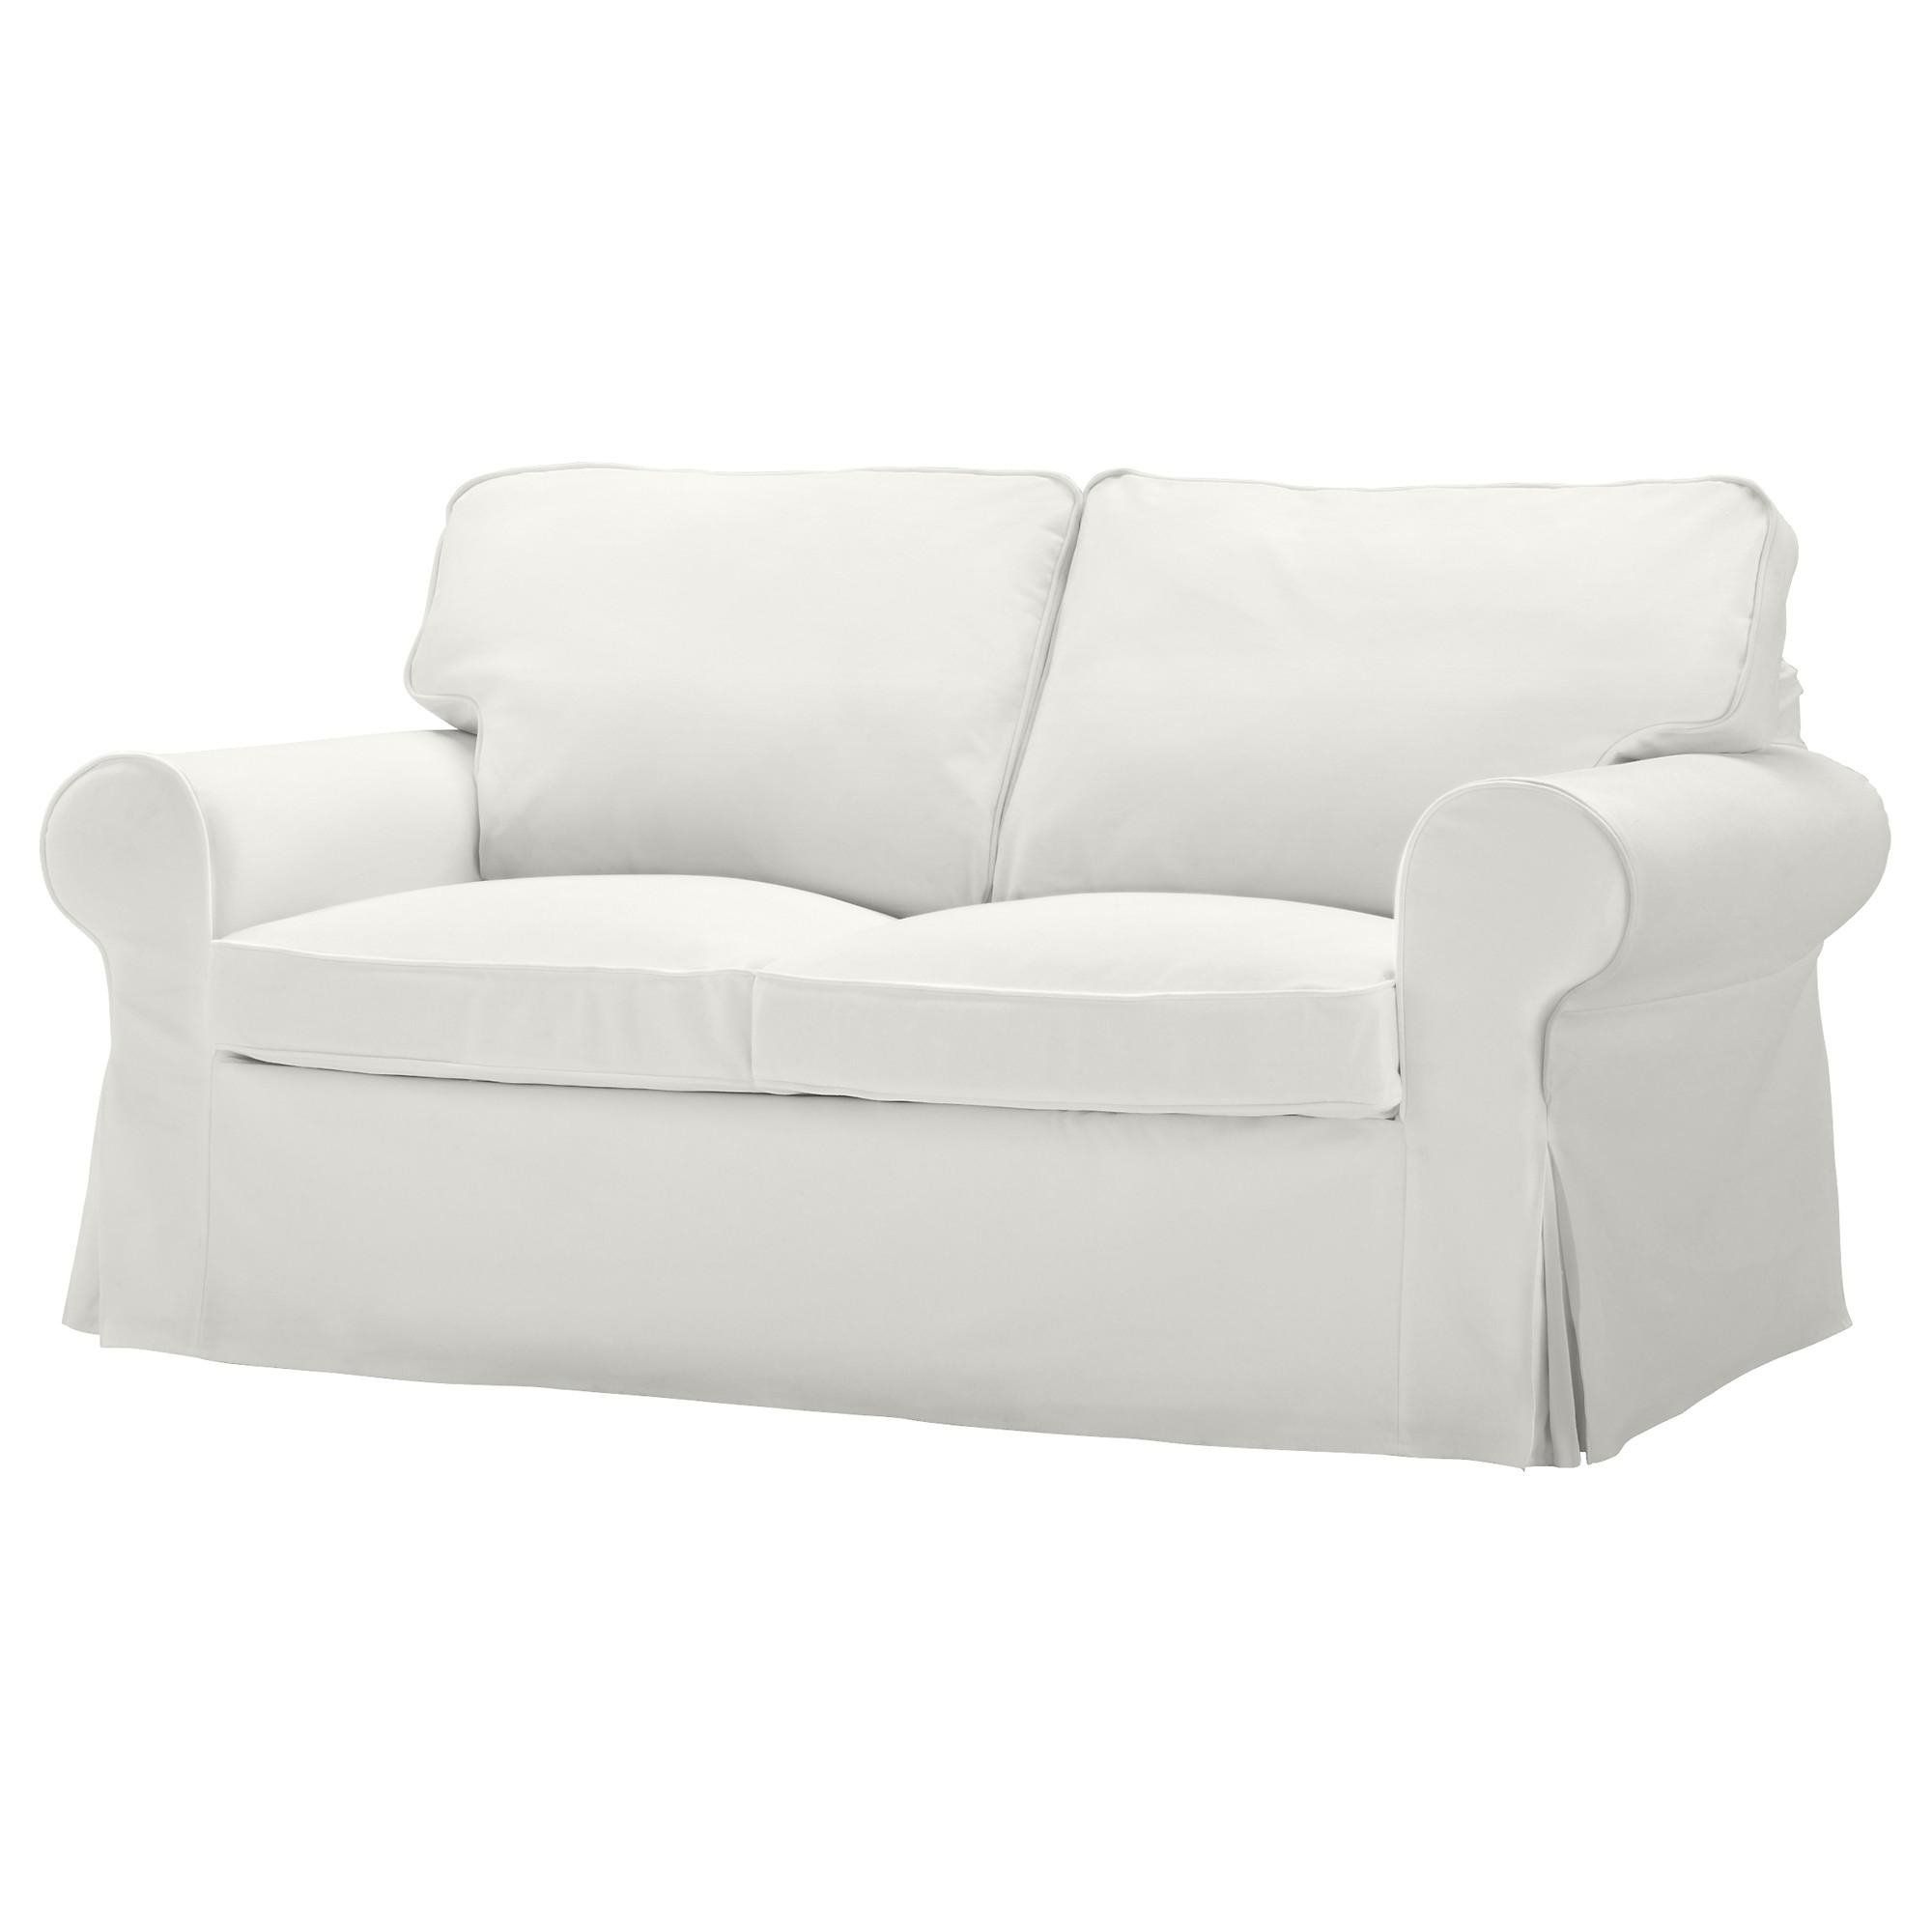 Furniture: Give Your Sofa Fresh New Look With Ikea Ektorp Chair Regarding Ikea Loveseat Sleeper Sofas (View 1 of 20)